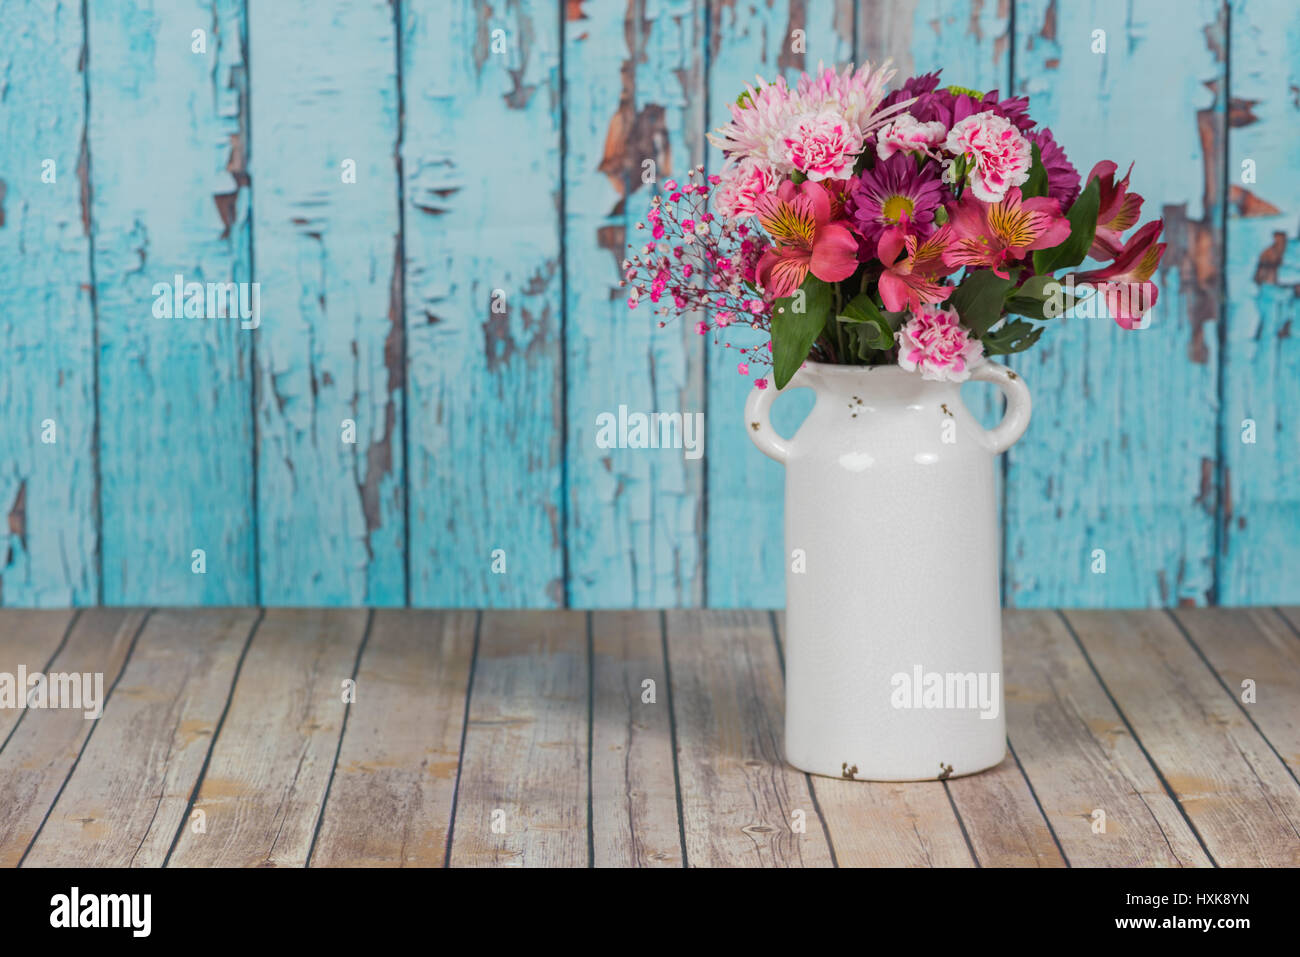 Flowers in a vintage white vase with cracked paint background flowers in a vintage white vase with cracked paint background reviewsmspy